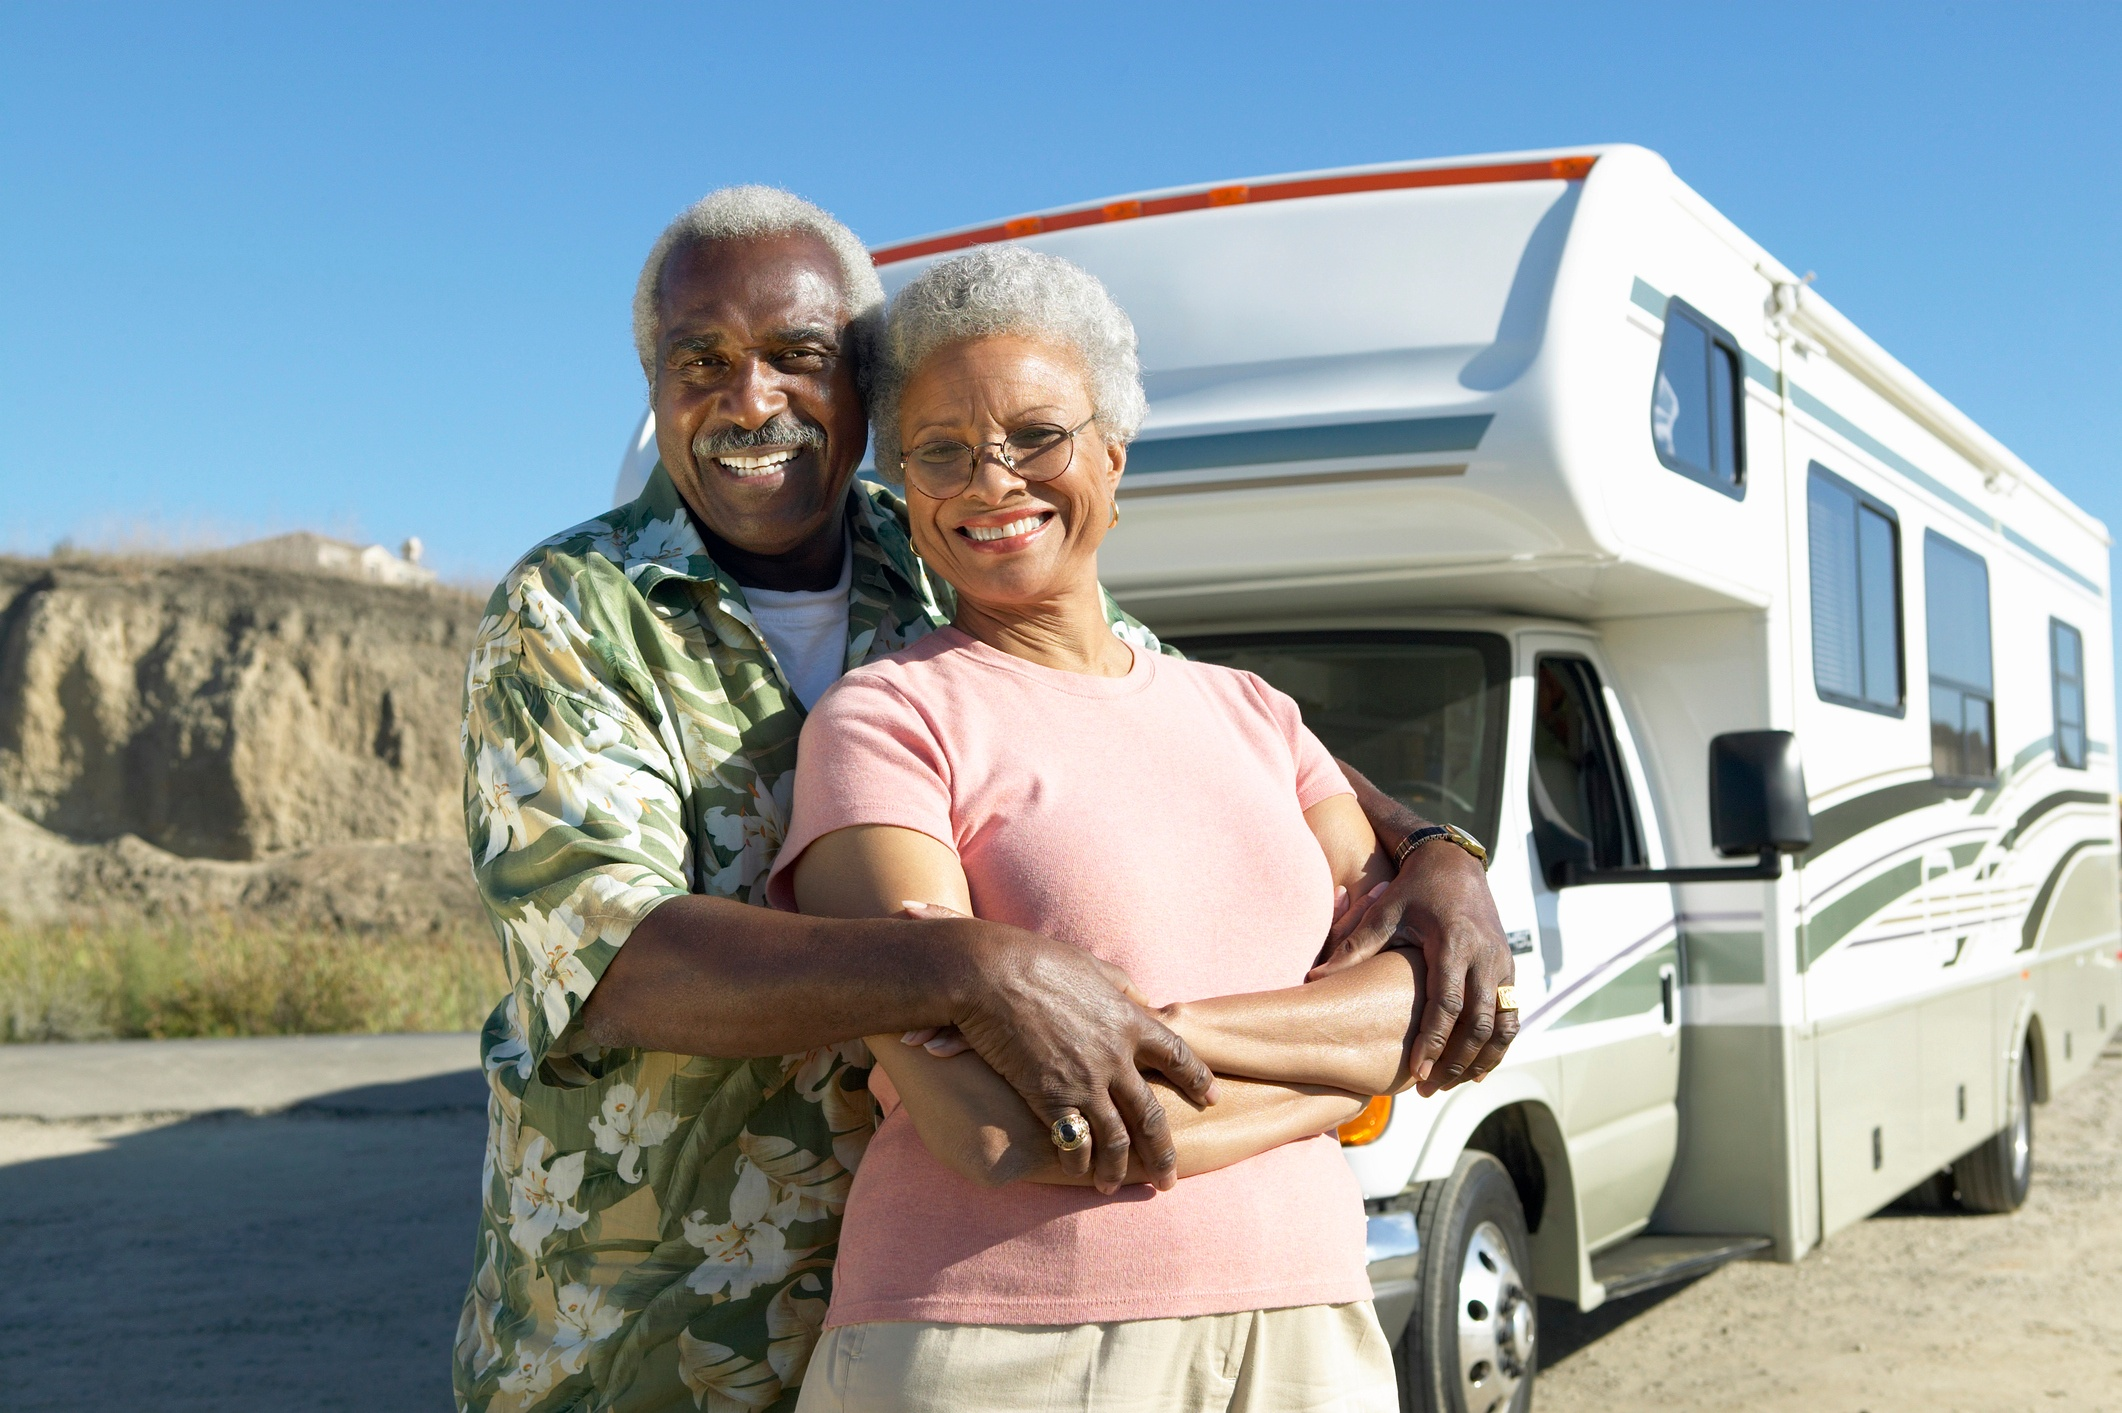 Storage for Frequent RV Travelers